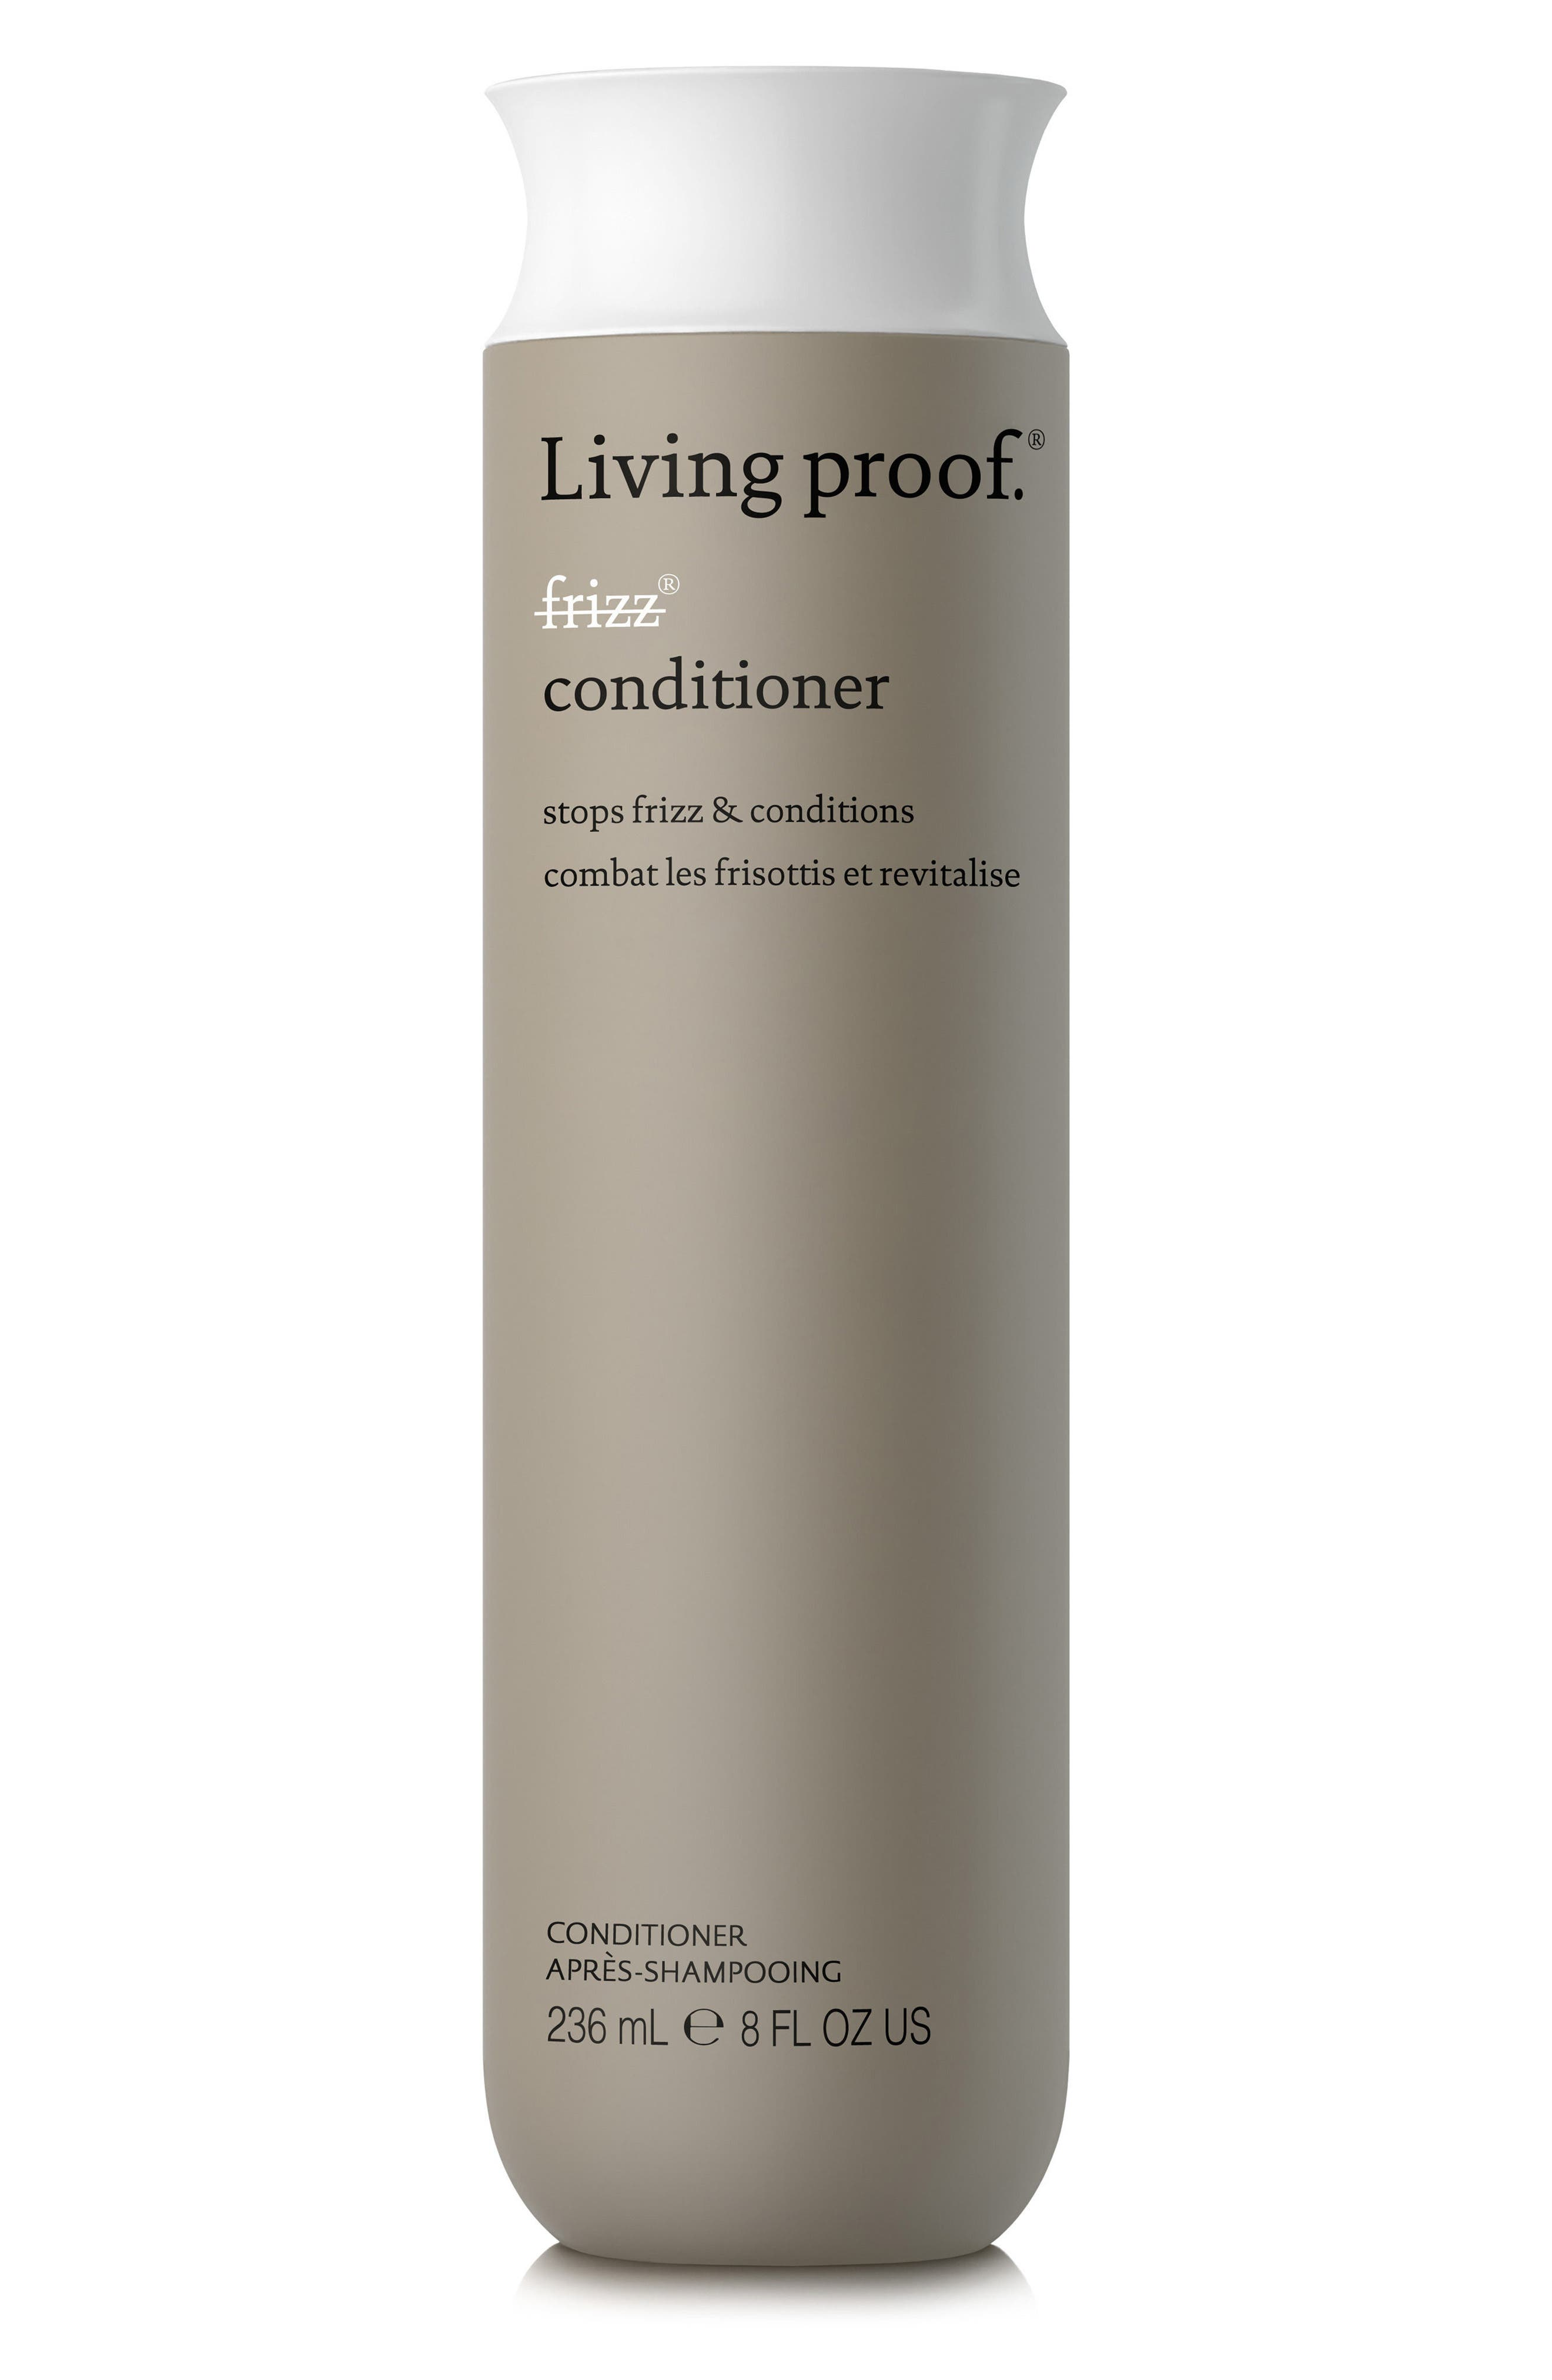 Alternate Image 1 Selected - Living proof® No Frizz Conditioner